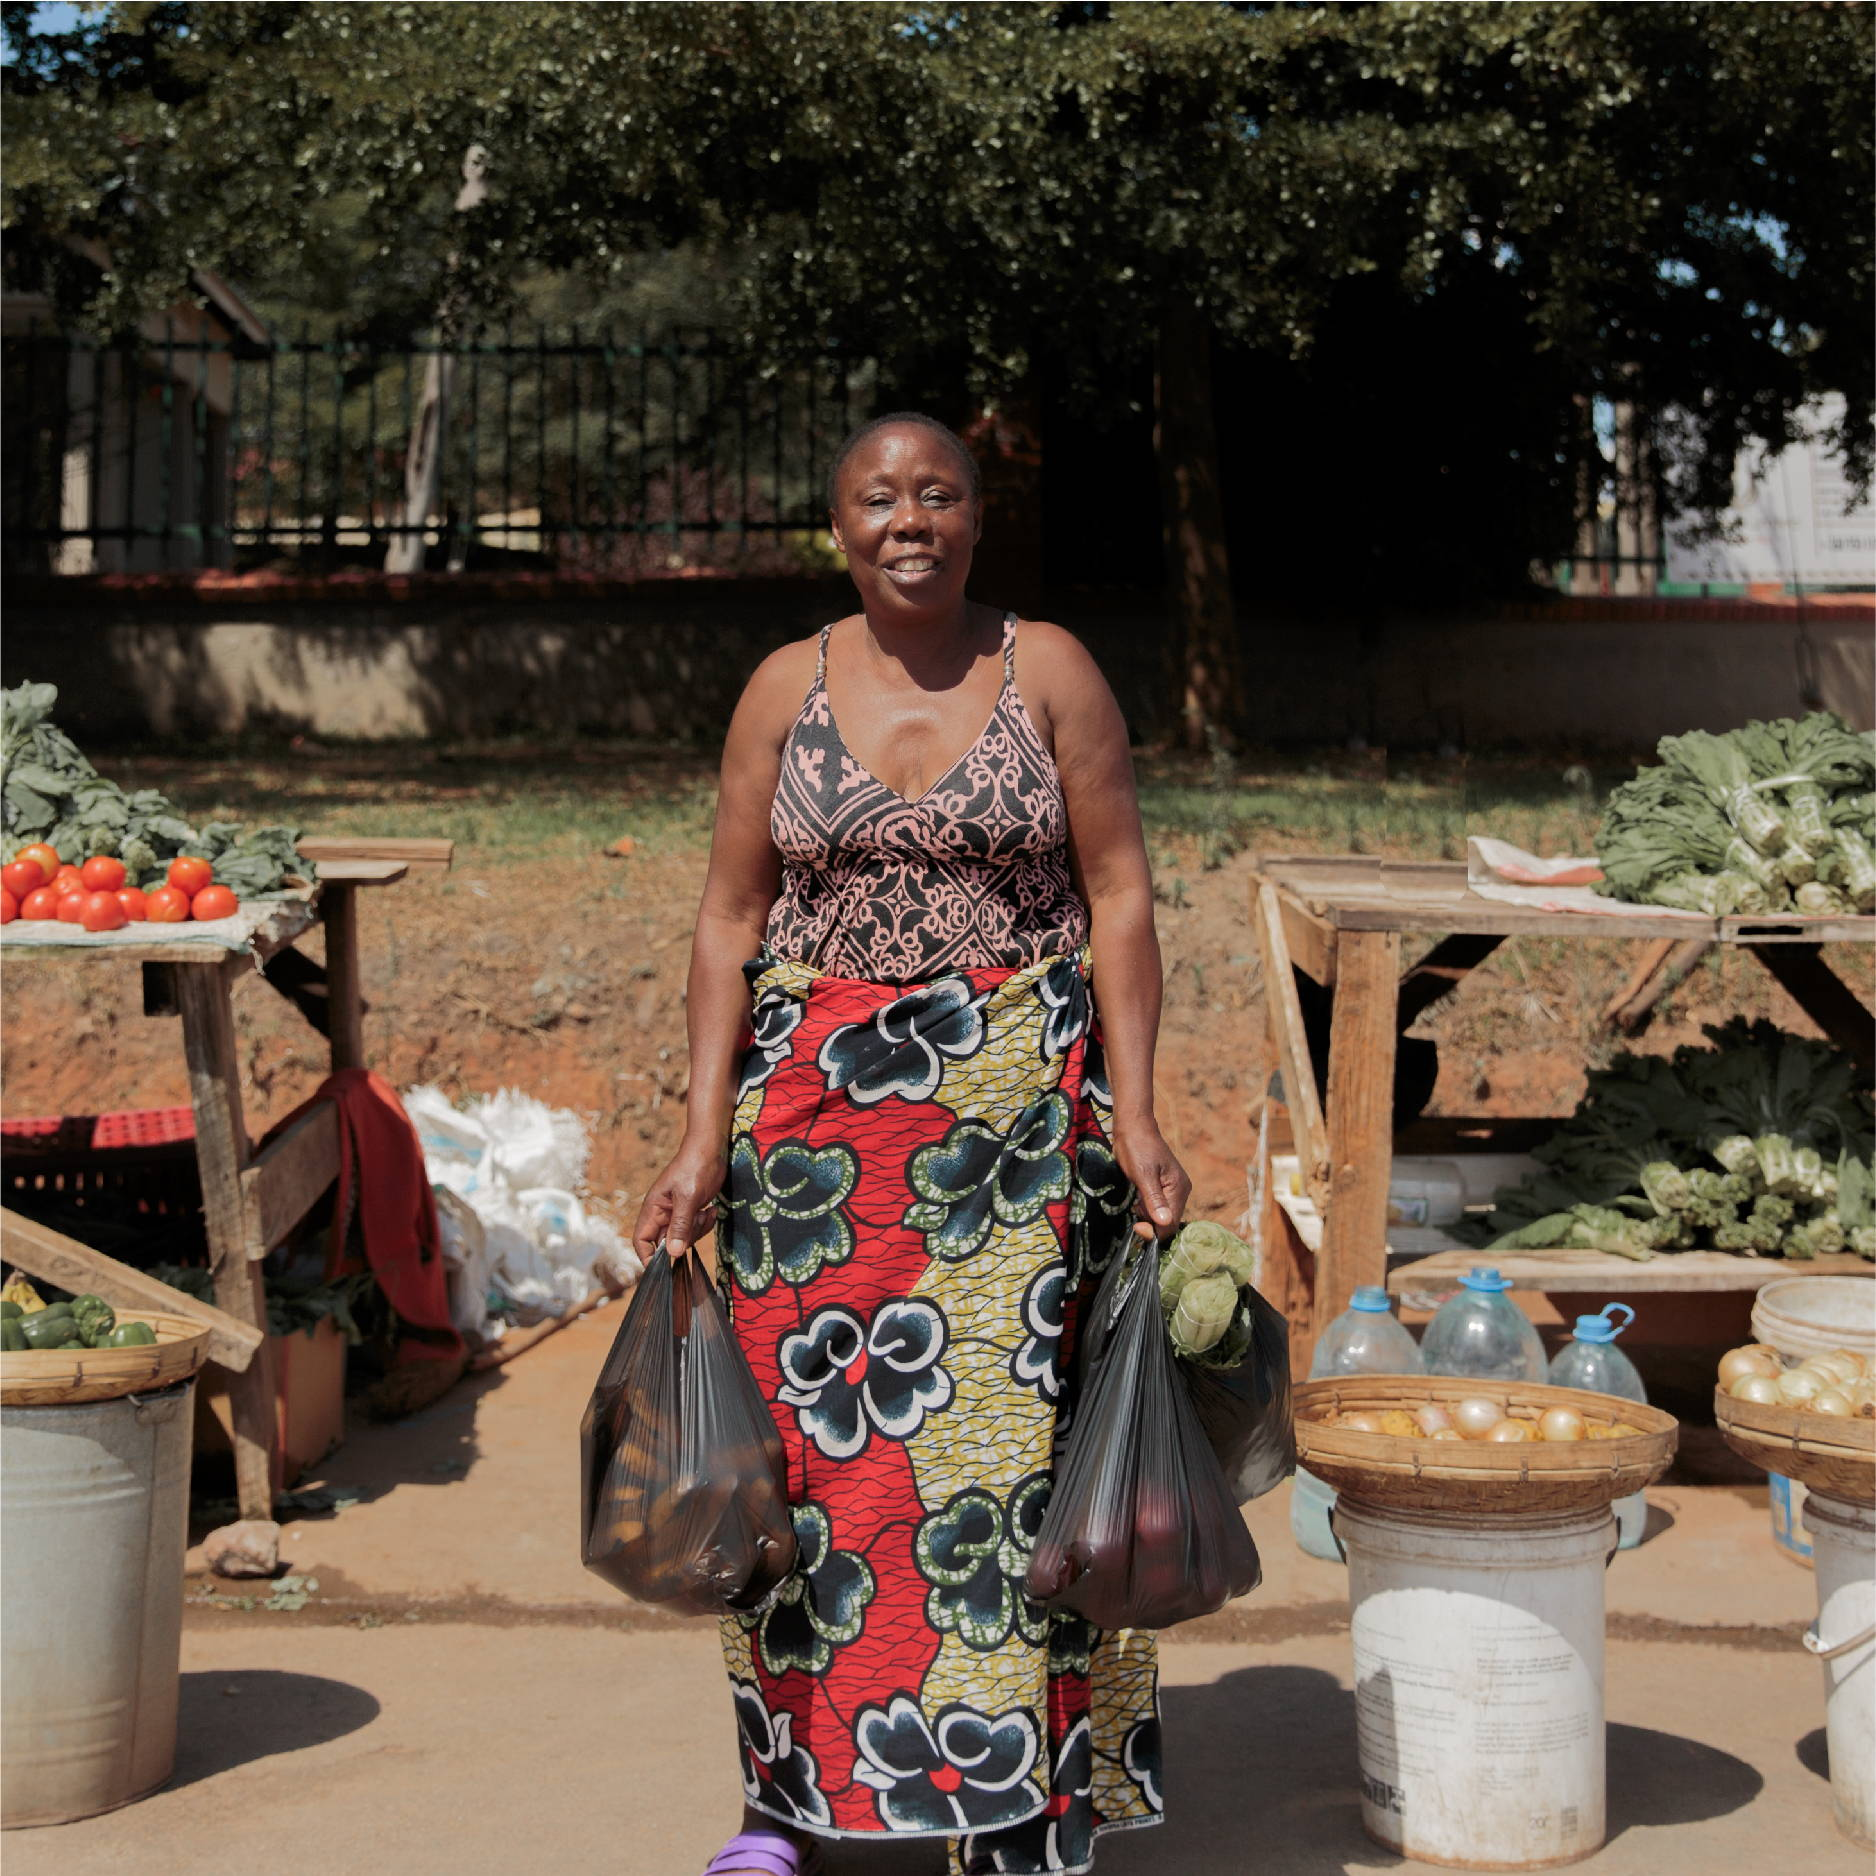 A woman stands smiling in front of two street vendors selling fresh local produce in Zambia. She holds two full black bags.